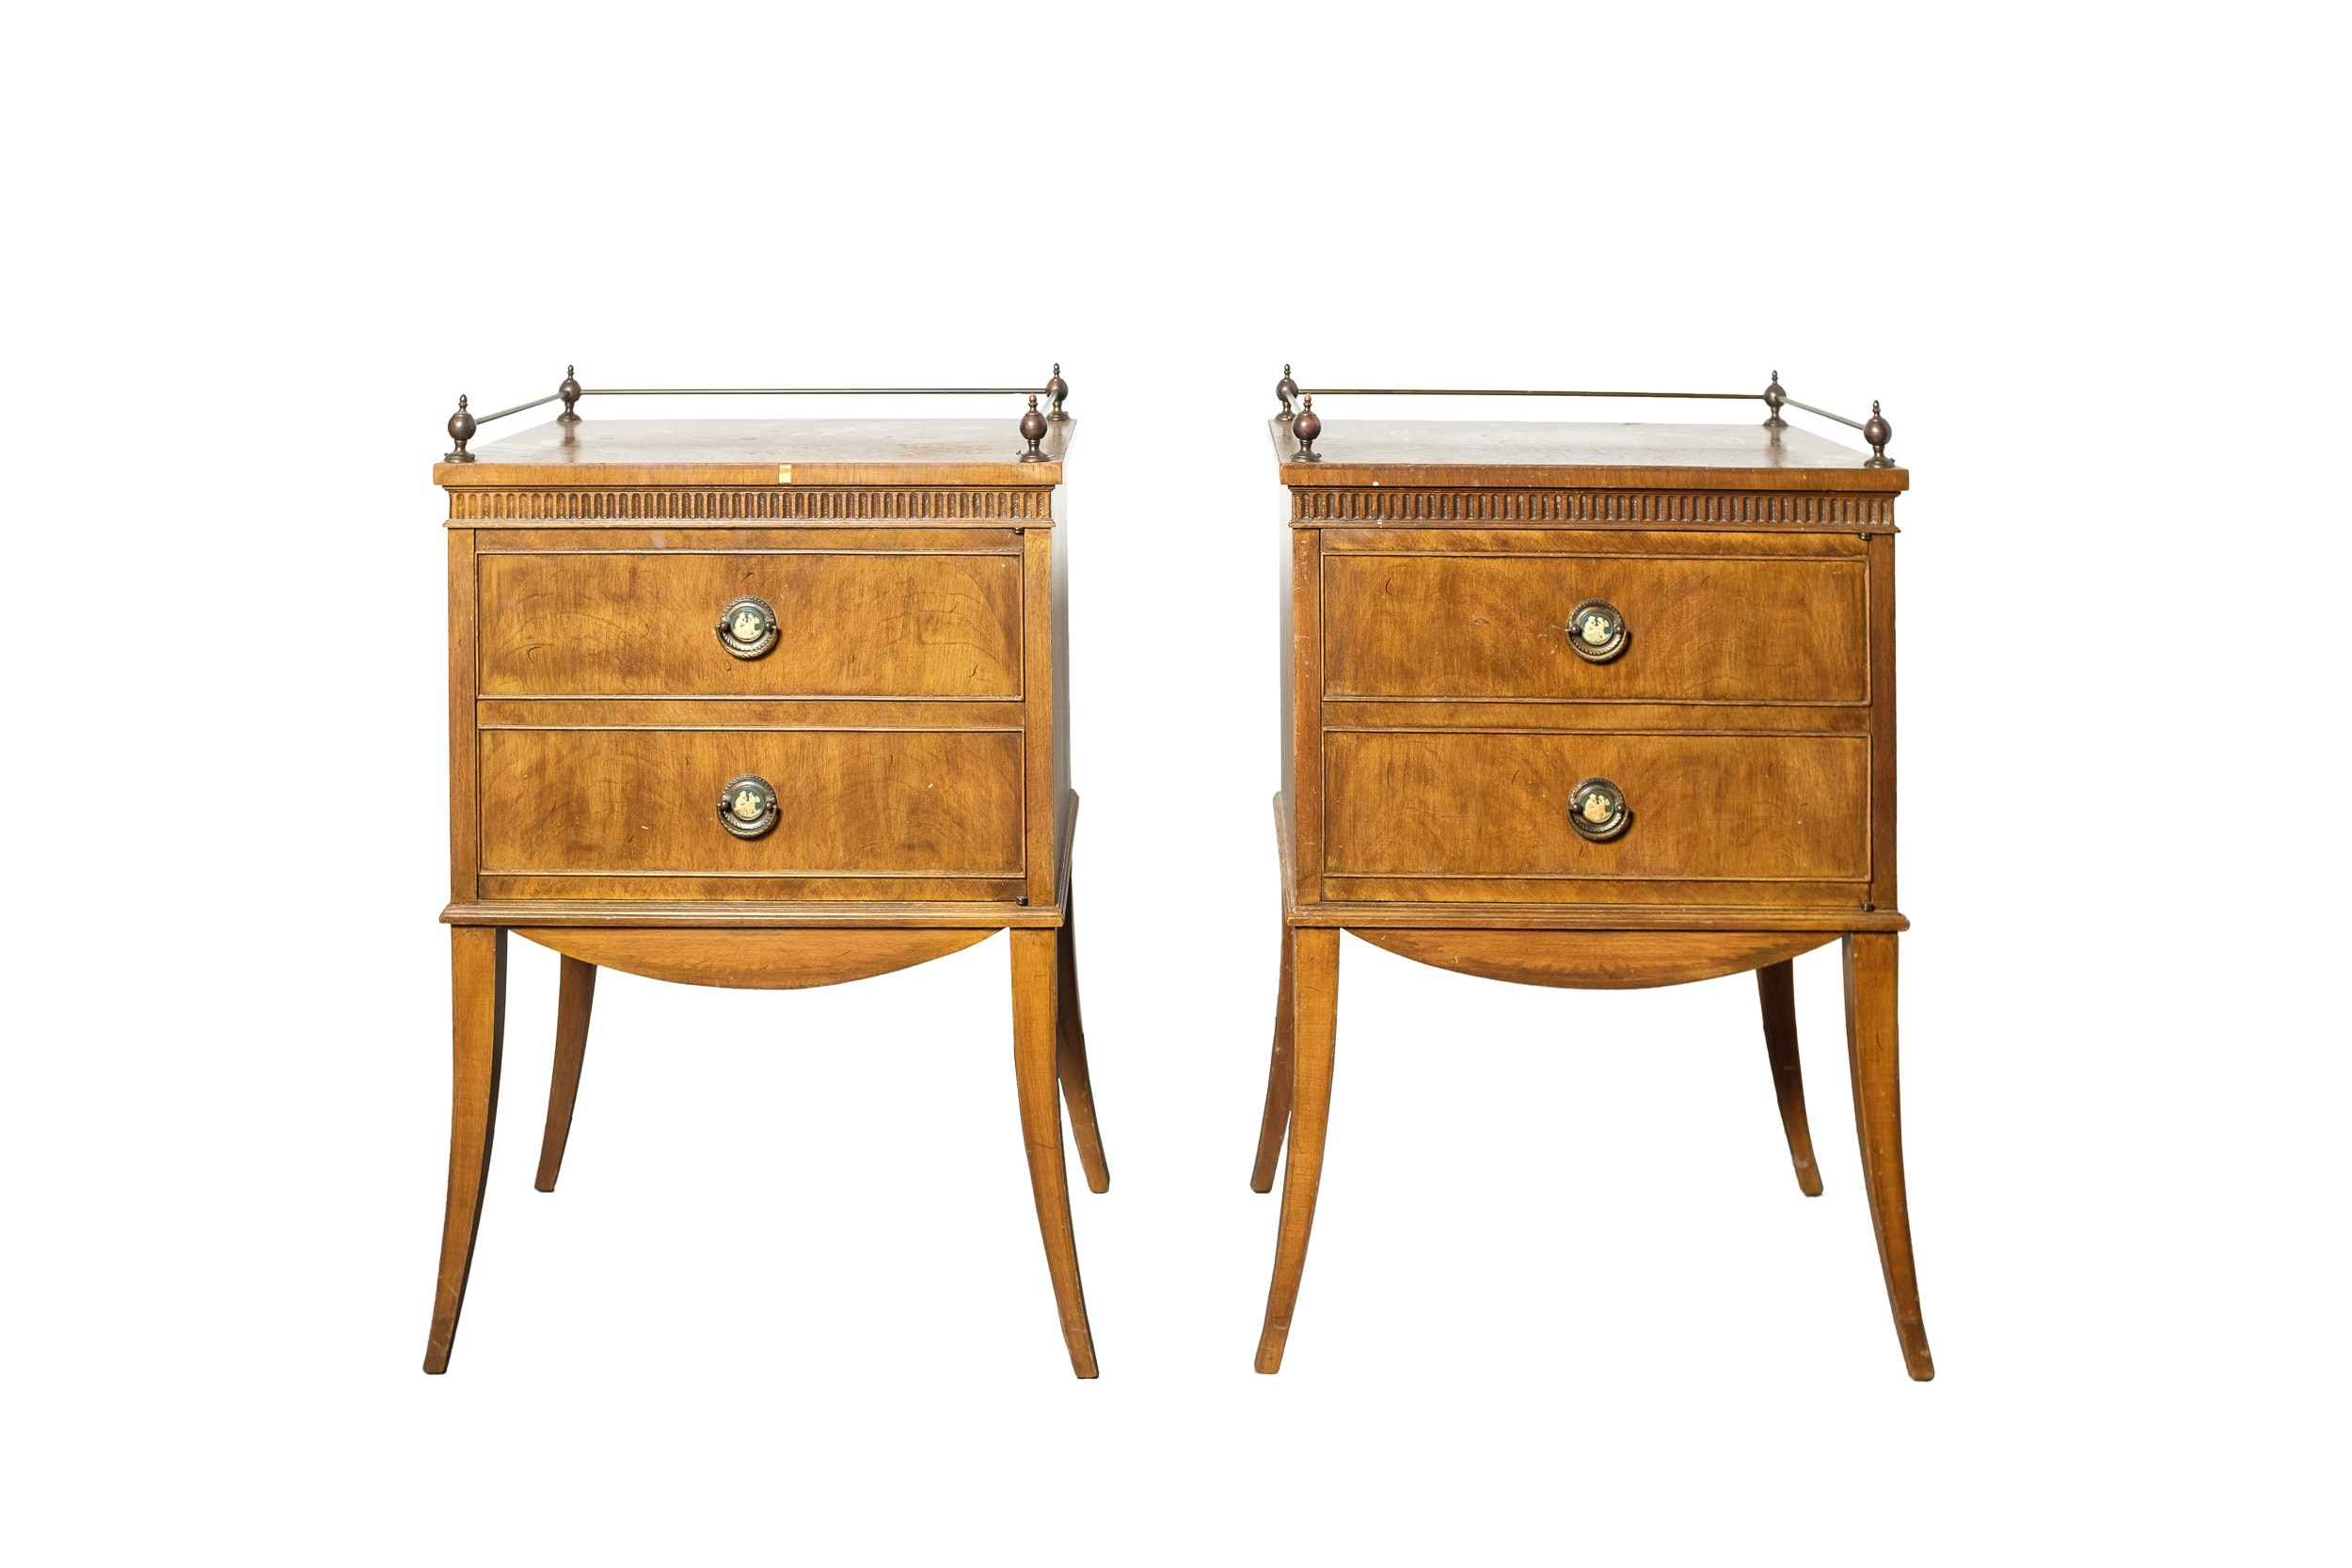 Pair of Vintage Neoclassical Style Bedside Tables